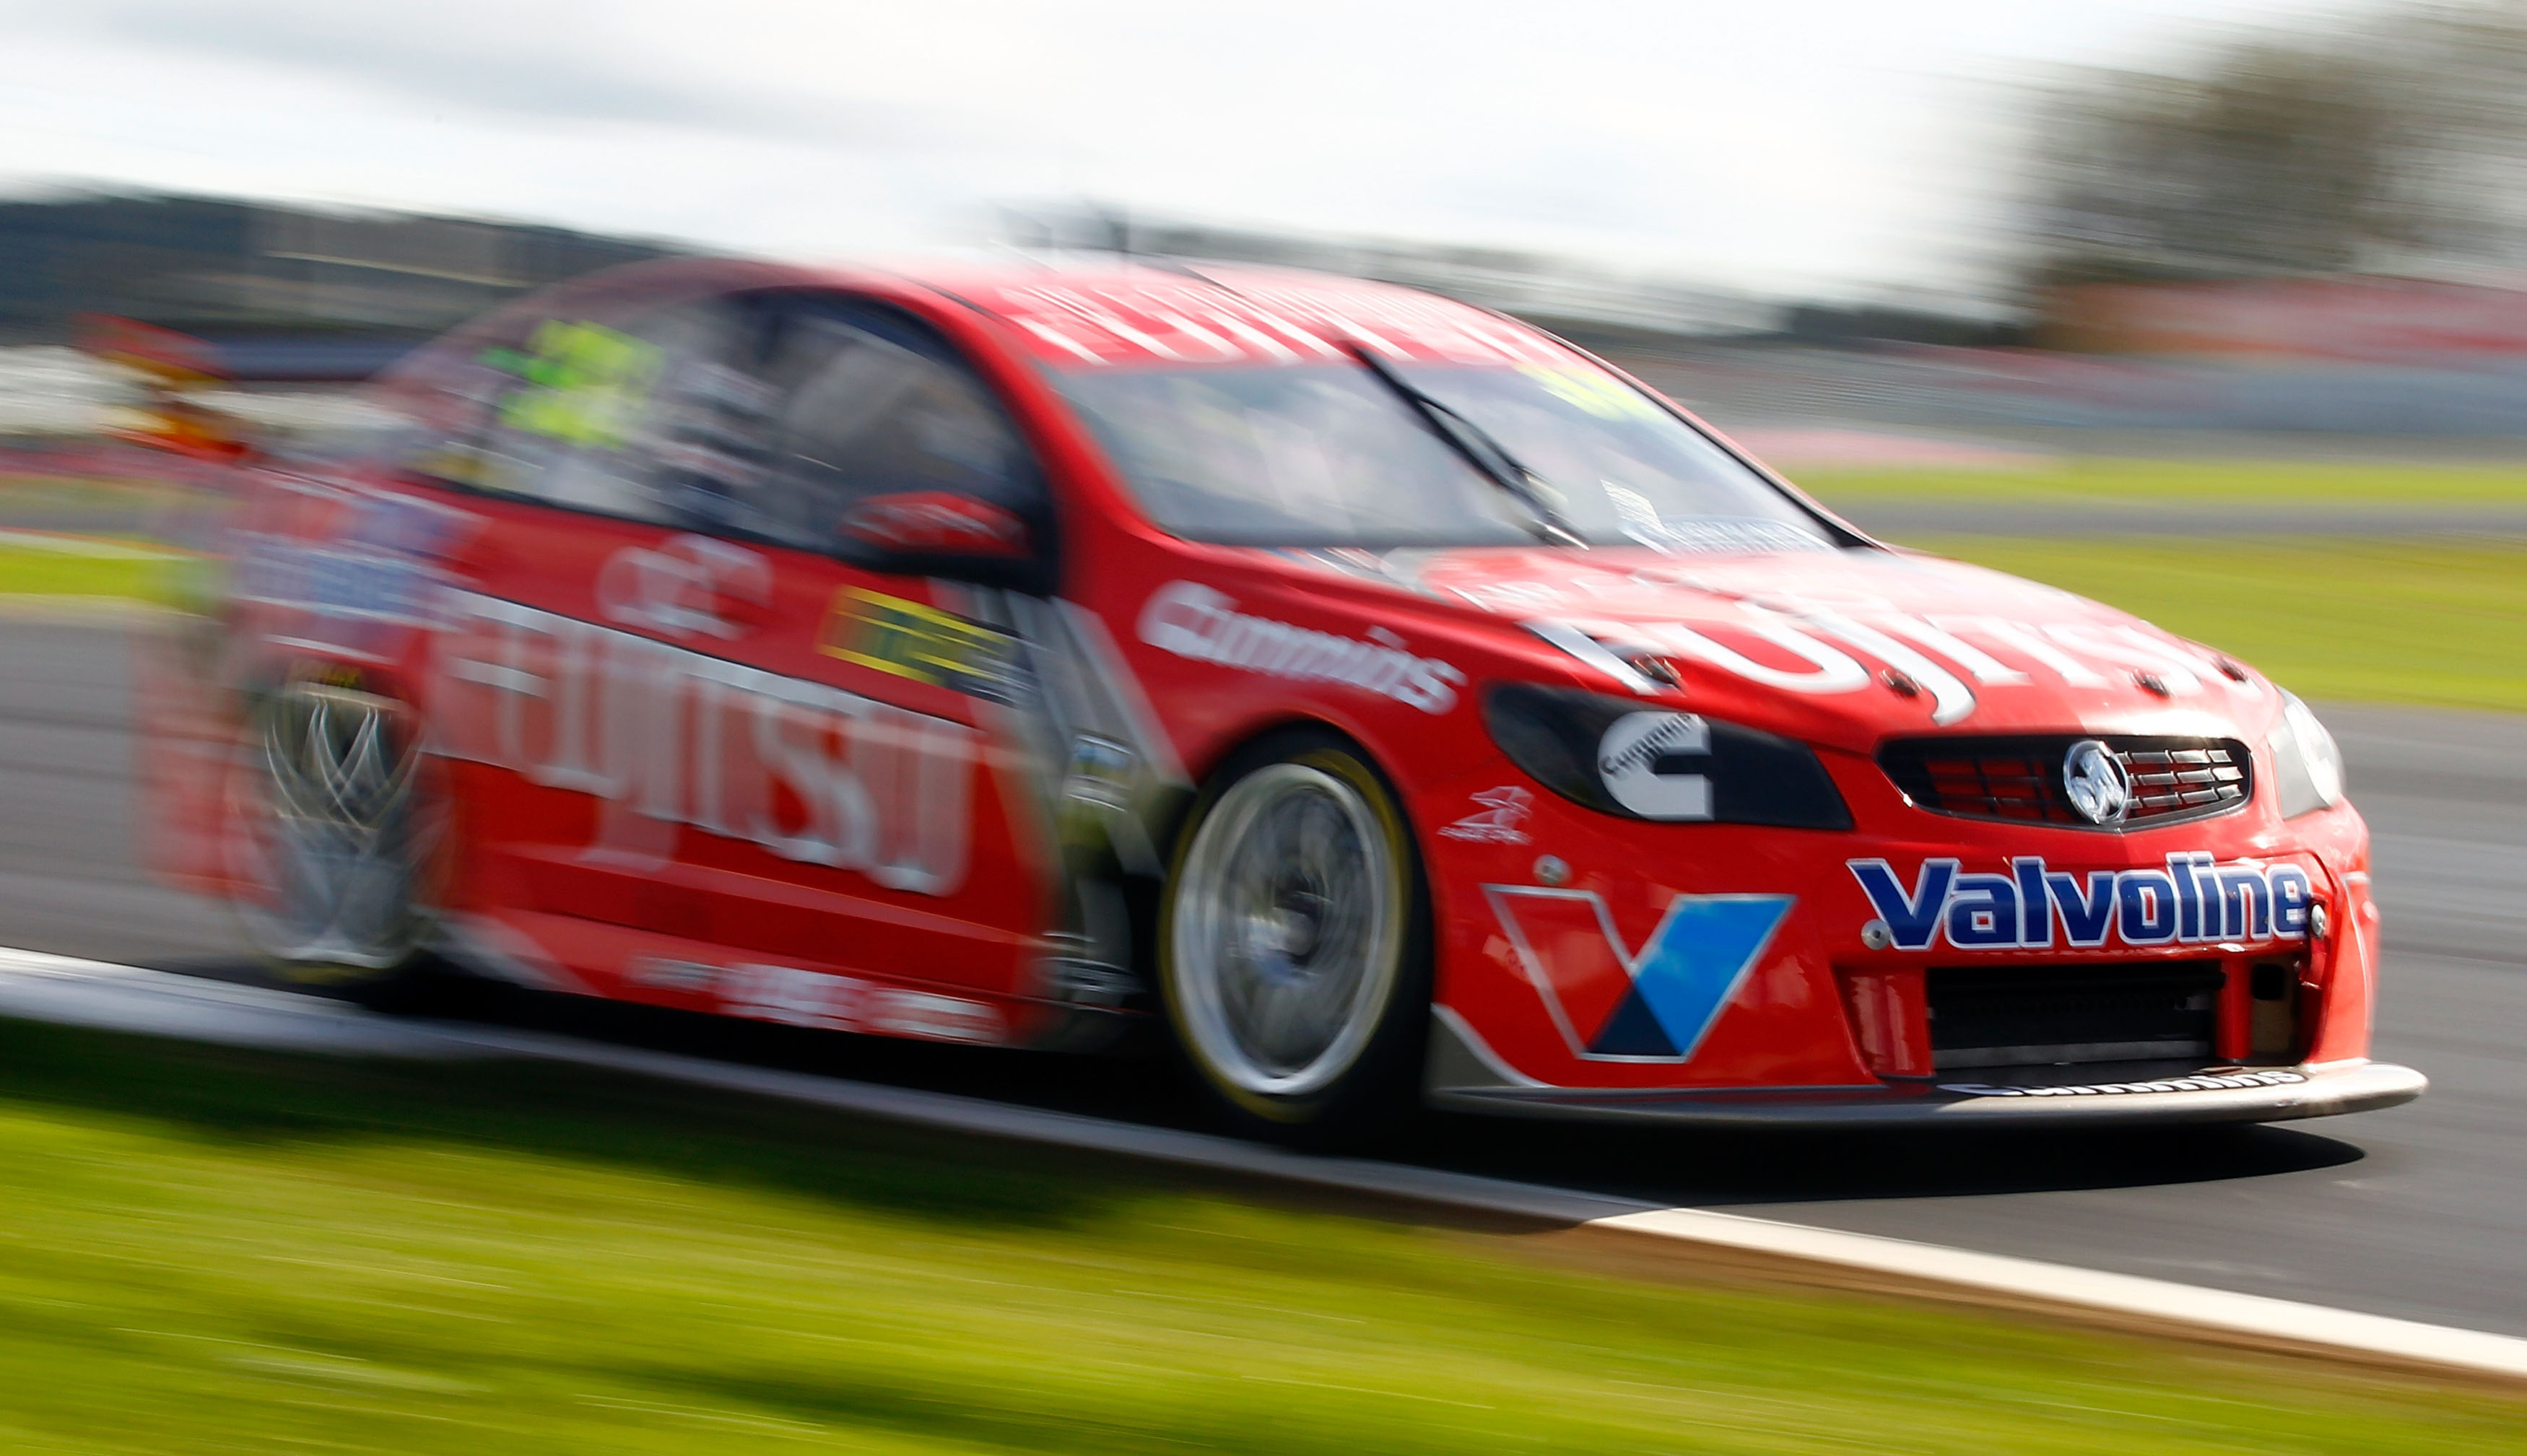 V8 Supercars Wallpaper HD Wallpaper | Cars Wallpapers